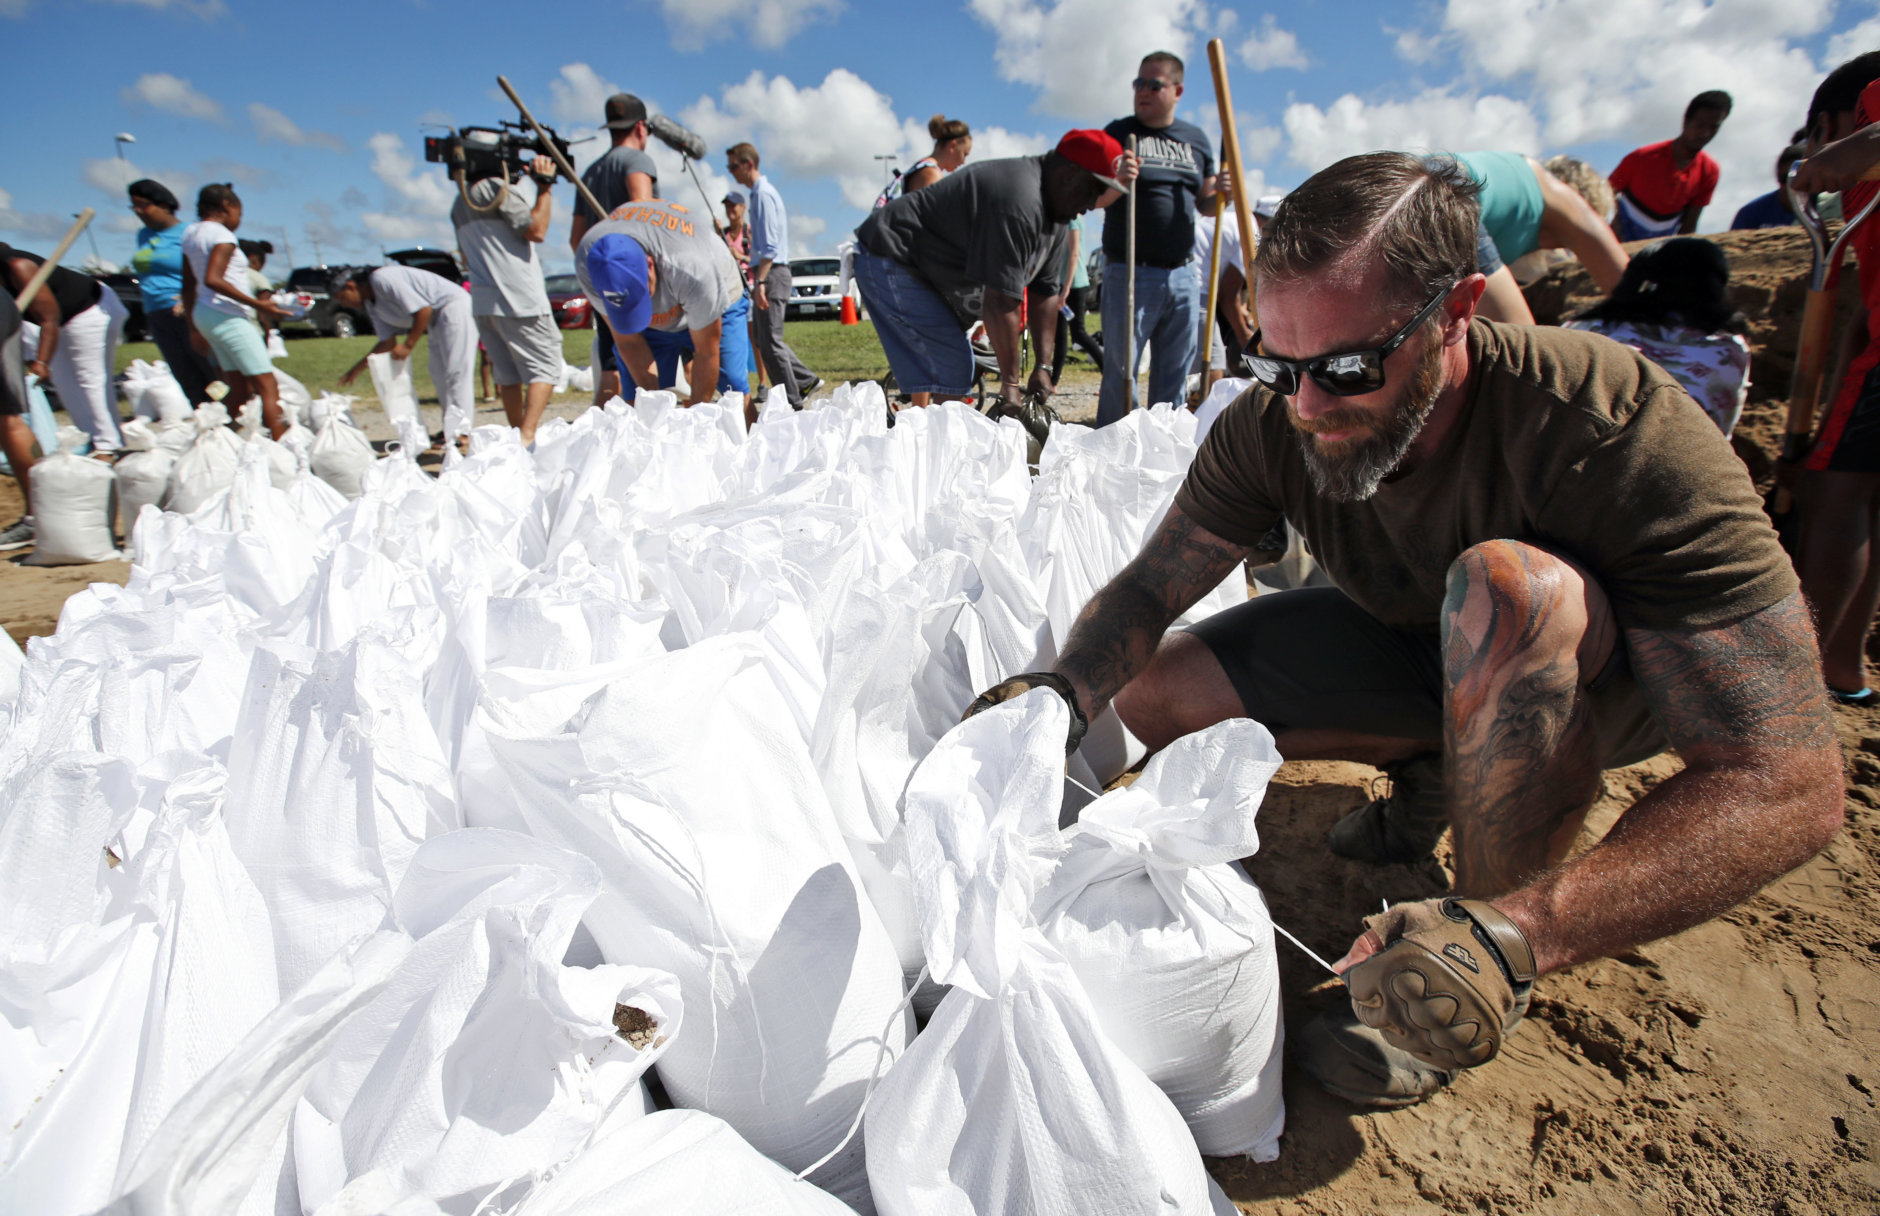 Brady Osborne ties freshly filled sandbags, Wednesday, Sept. 12, 2018, in Virginia Beach, Va., as Hurricane Florence moves towards the eastern shore. (AP Photo/Alex Brandon)